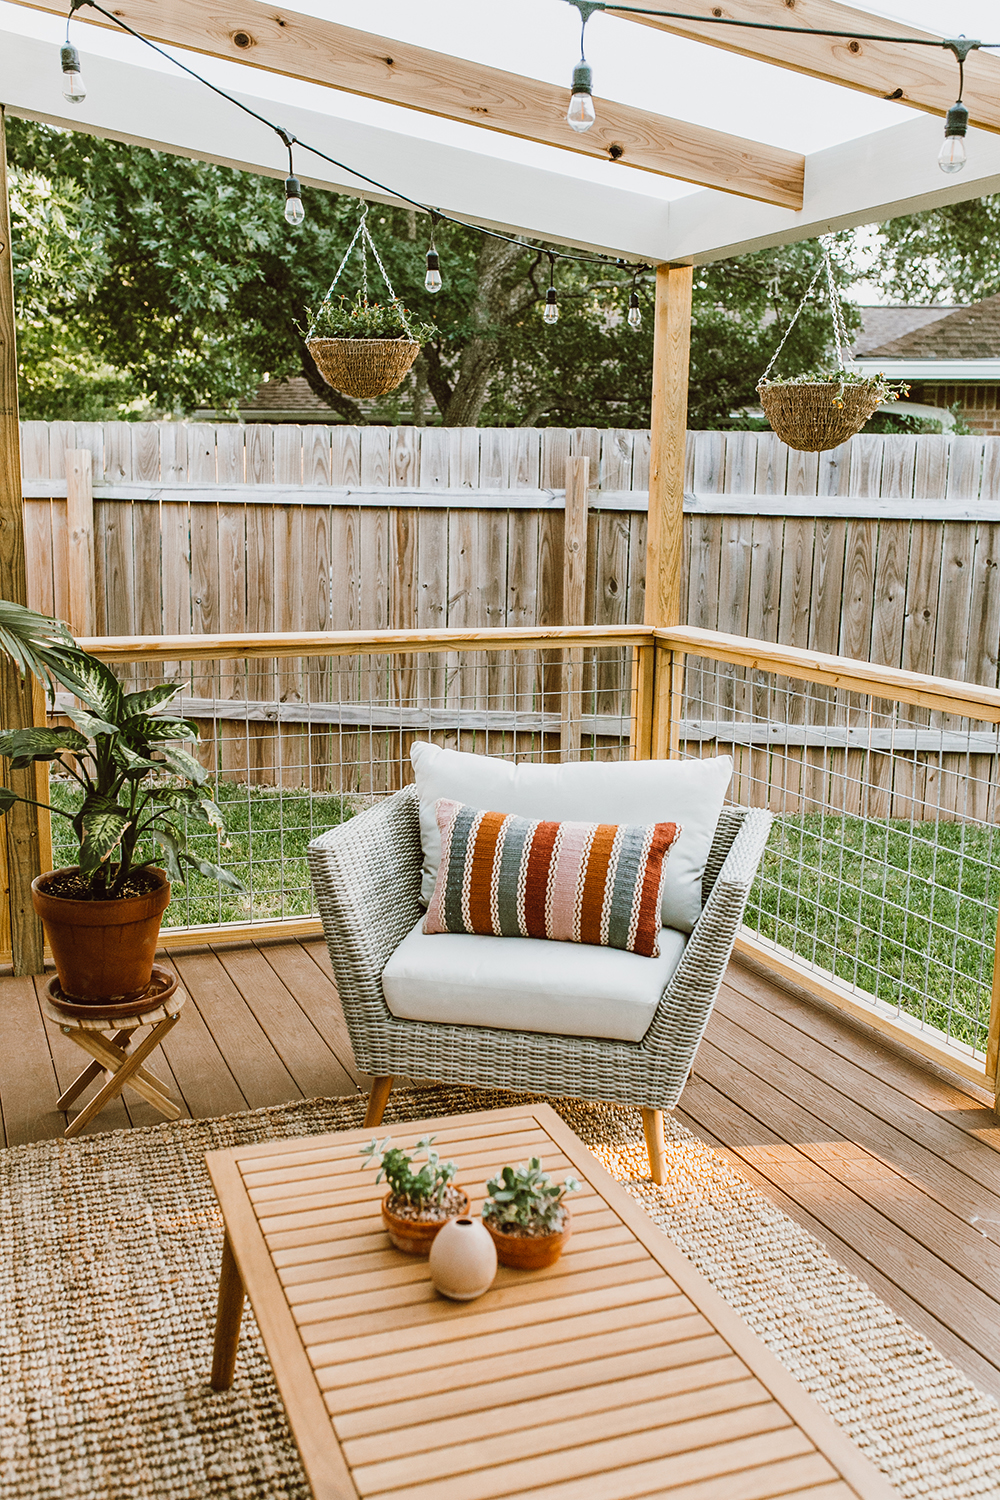 livvyland-blog-olivia-watson-before-after-outside-patio-renovation-reveal-furniture-austin-texas-lifestyle-blogger-18